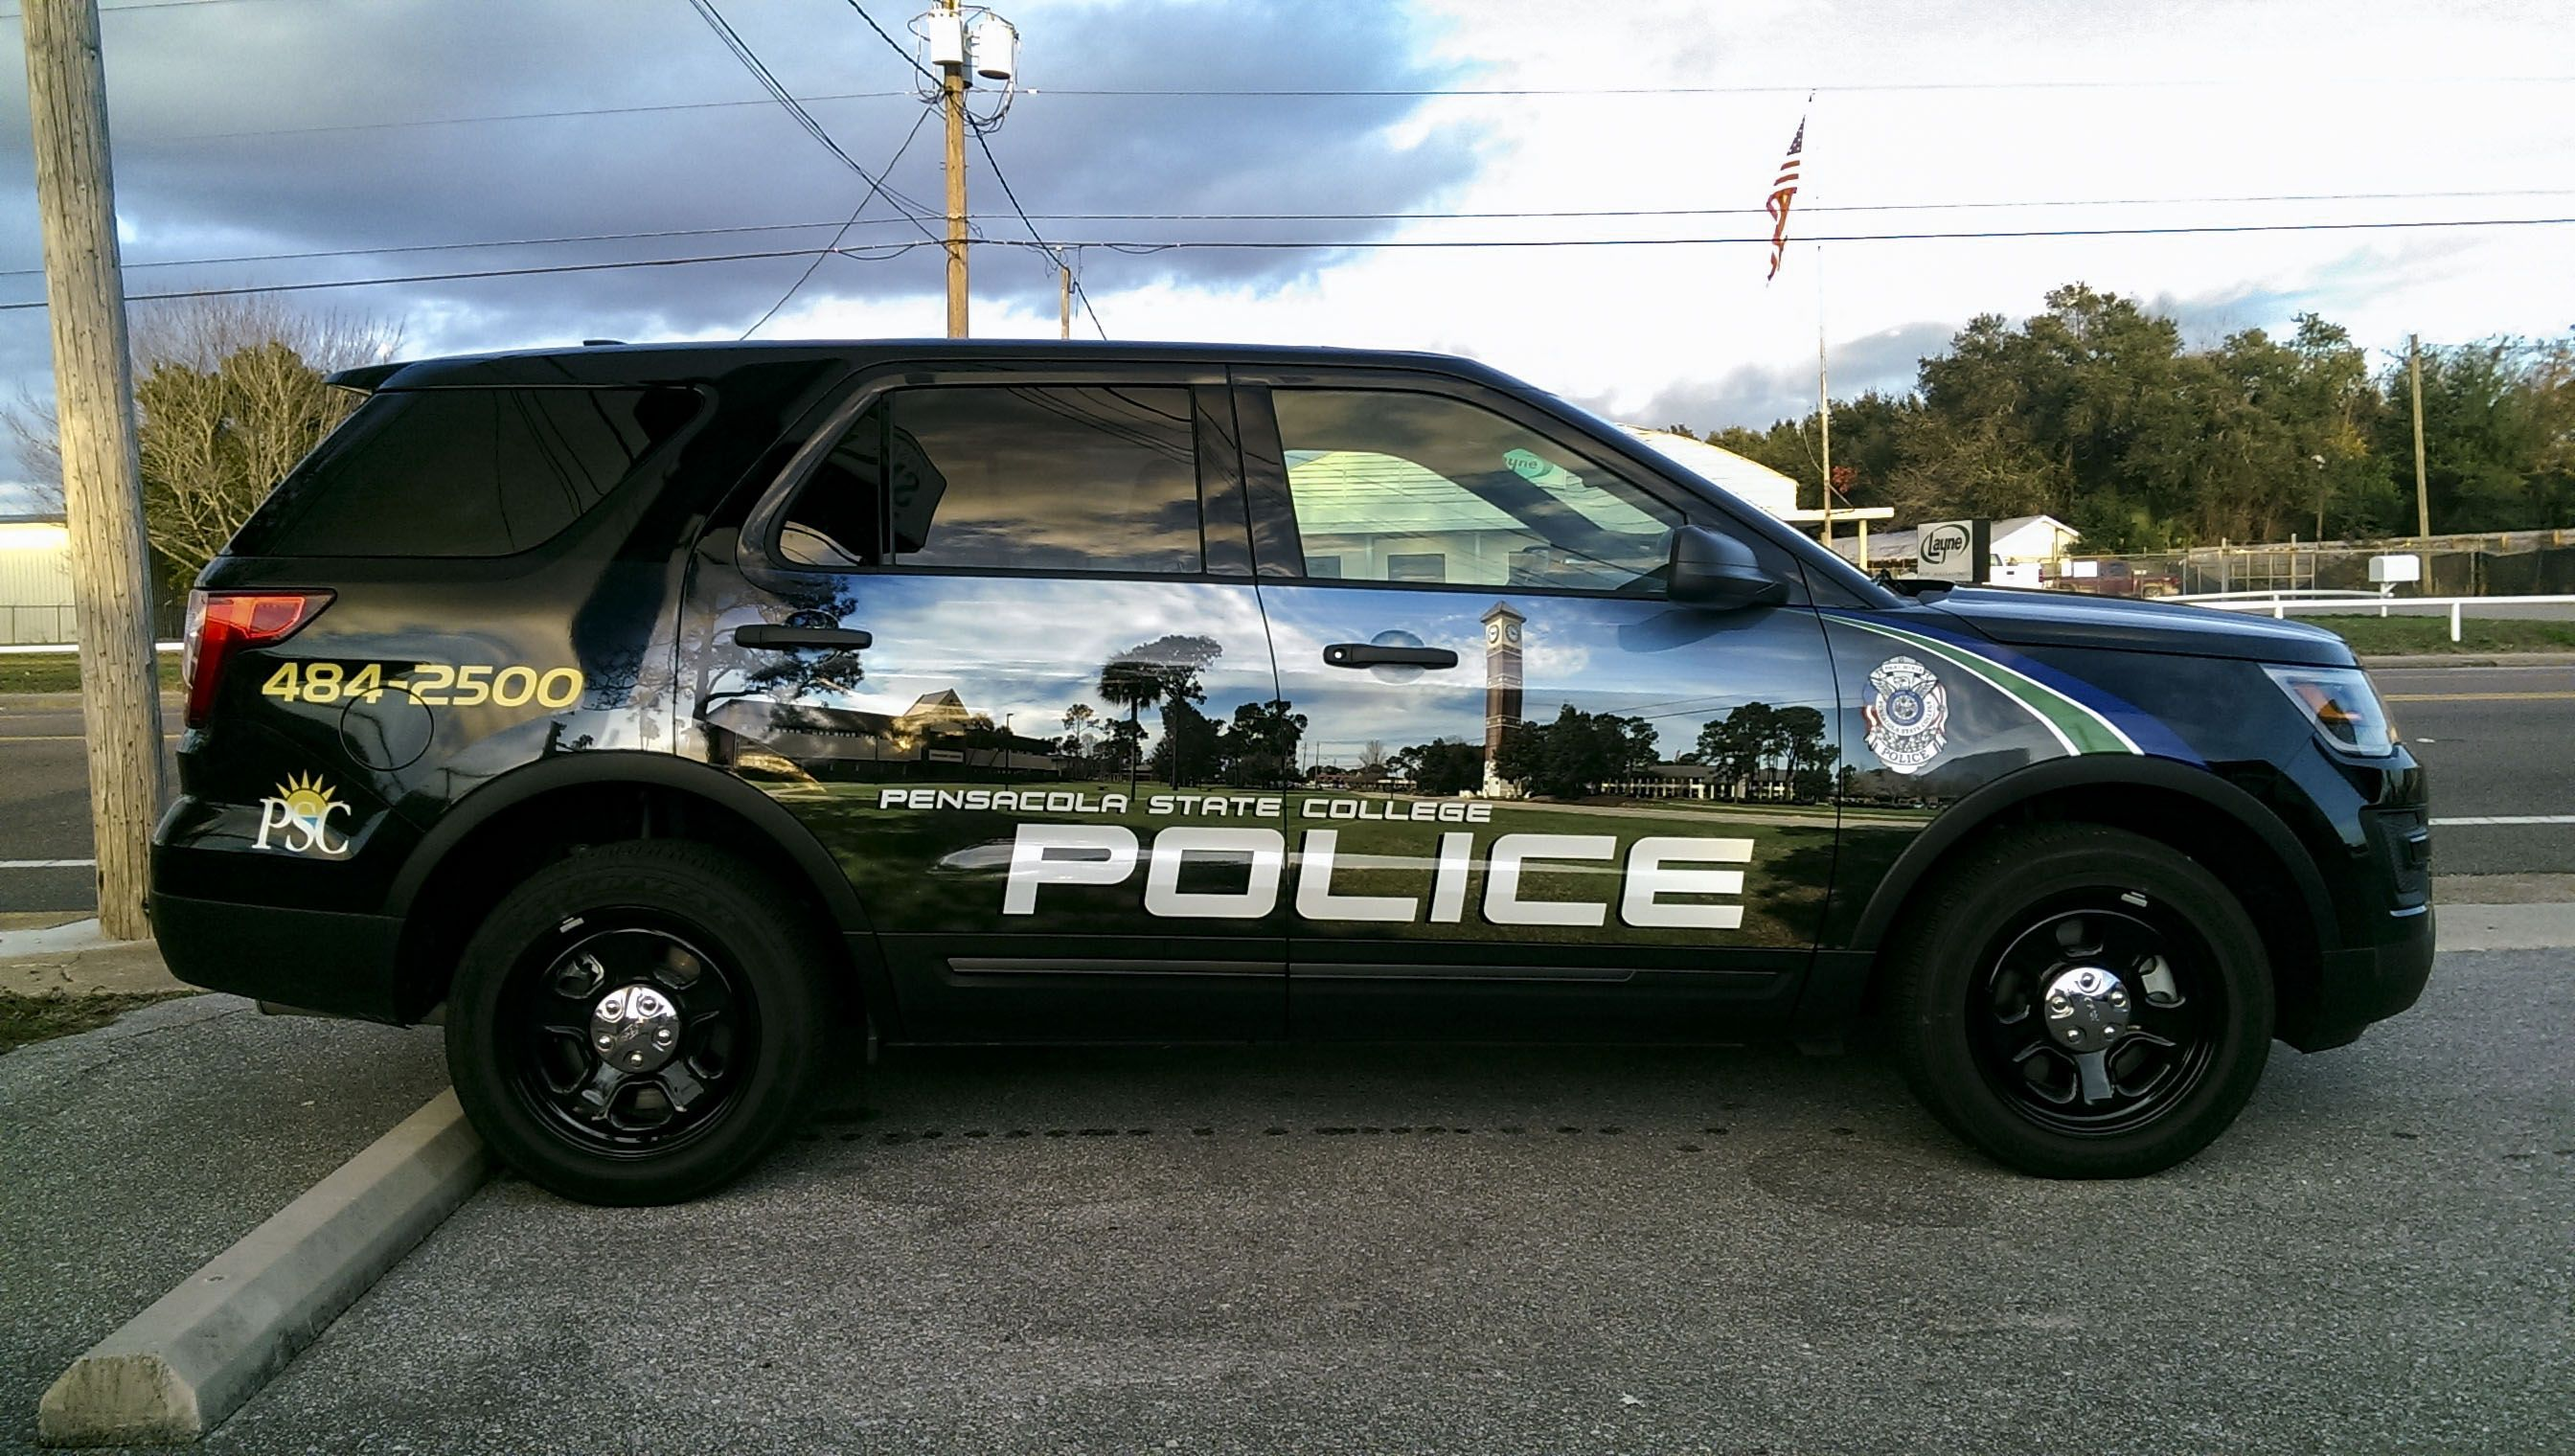 Pensacola State College Police SUV wrap by Pensacola Sign in